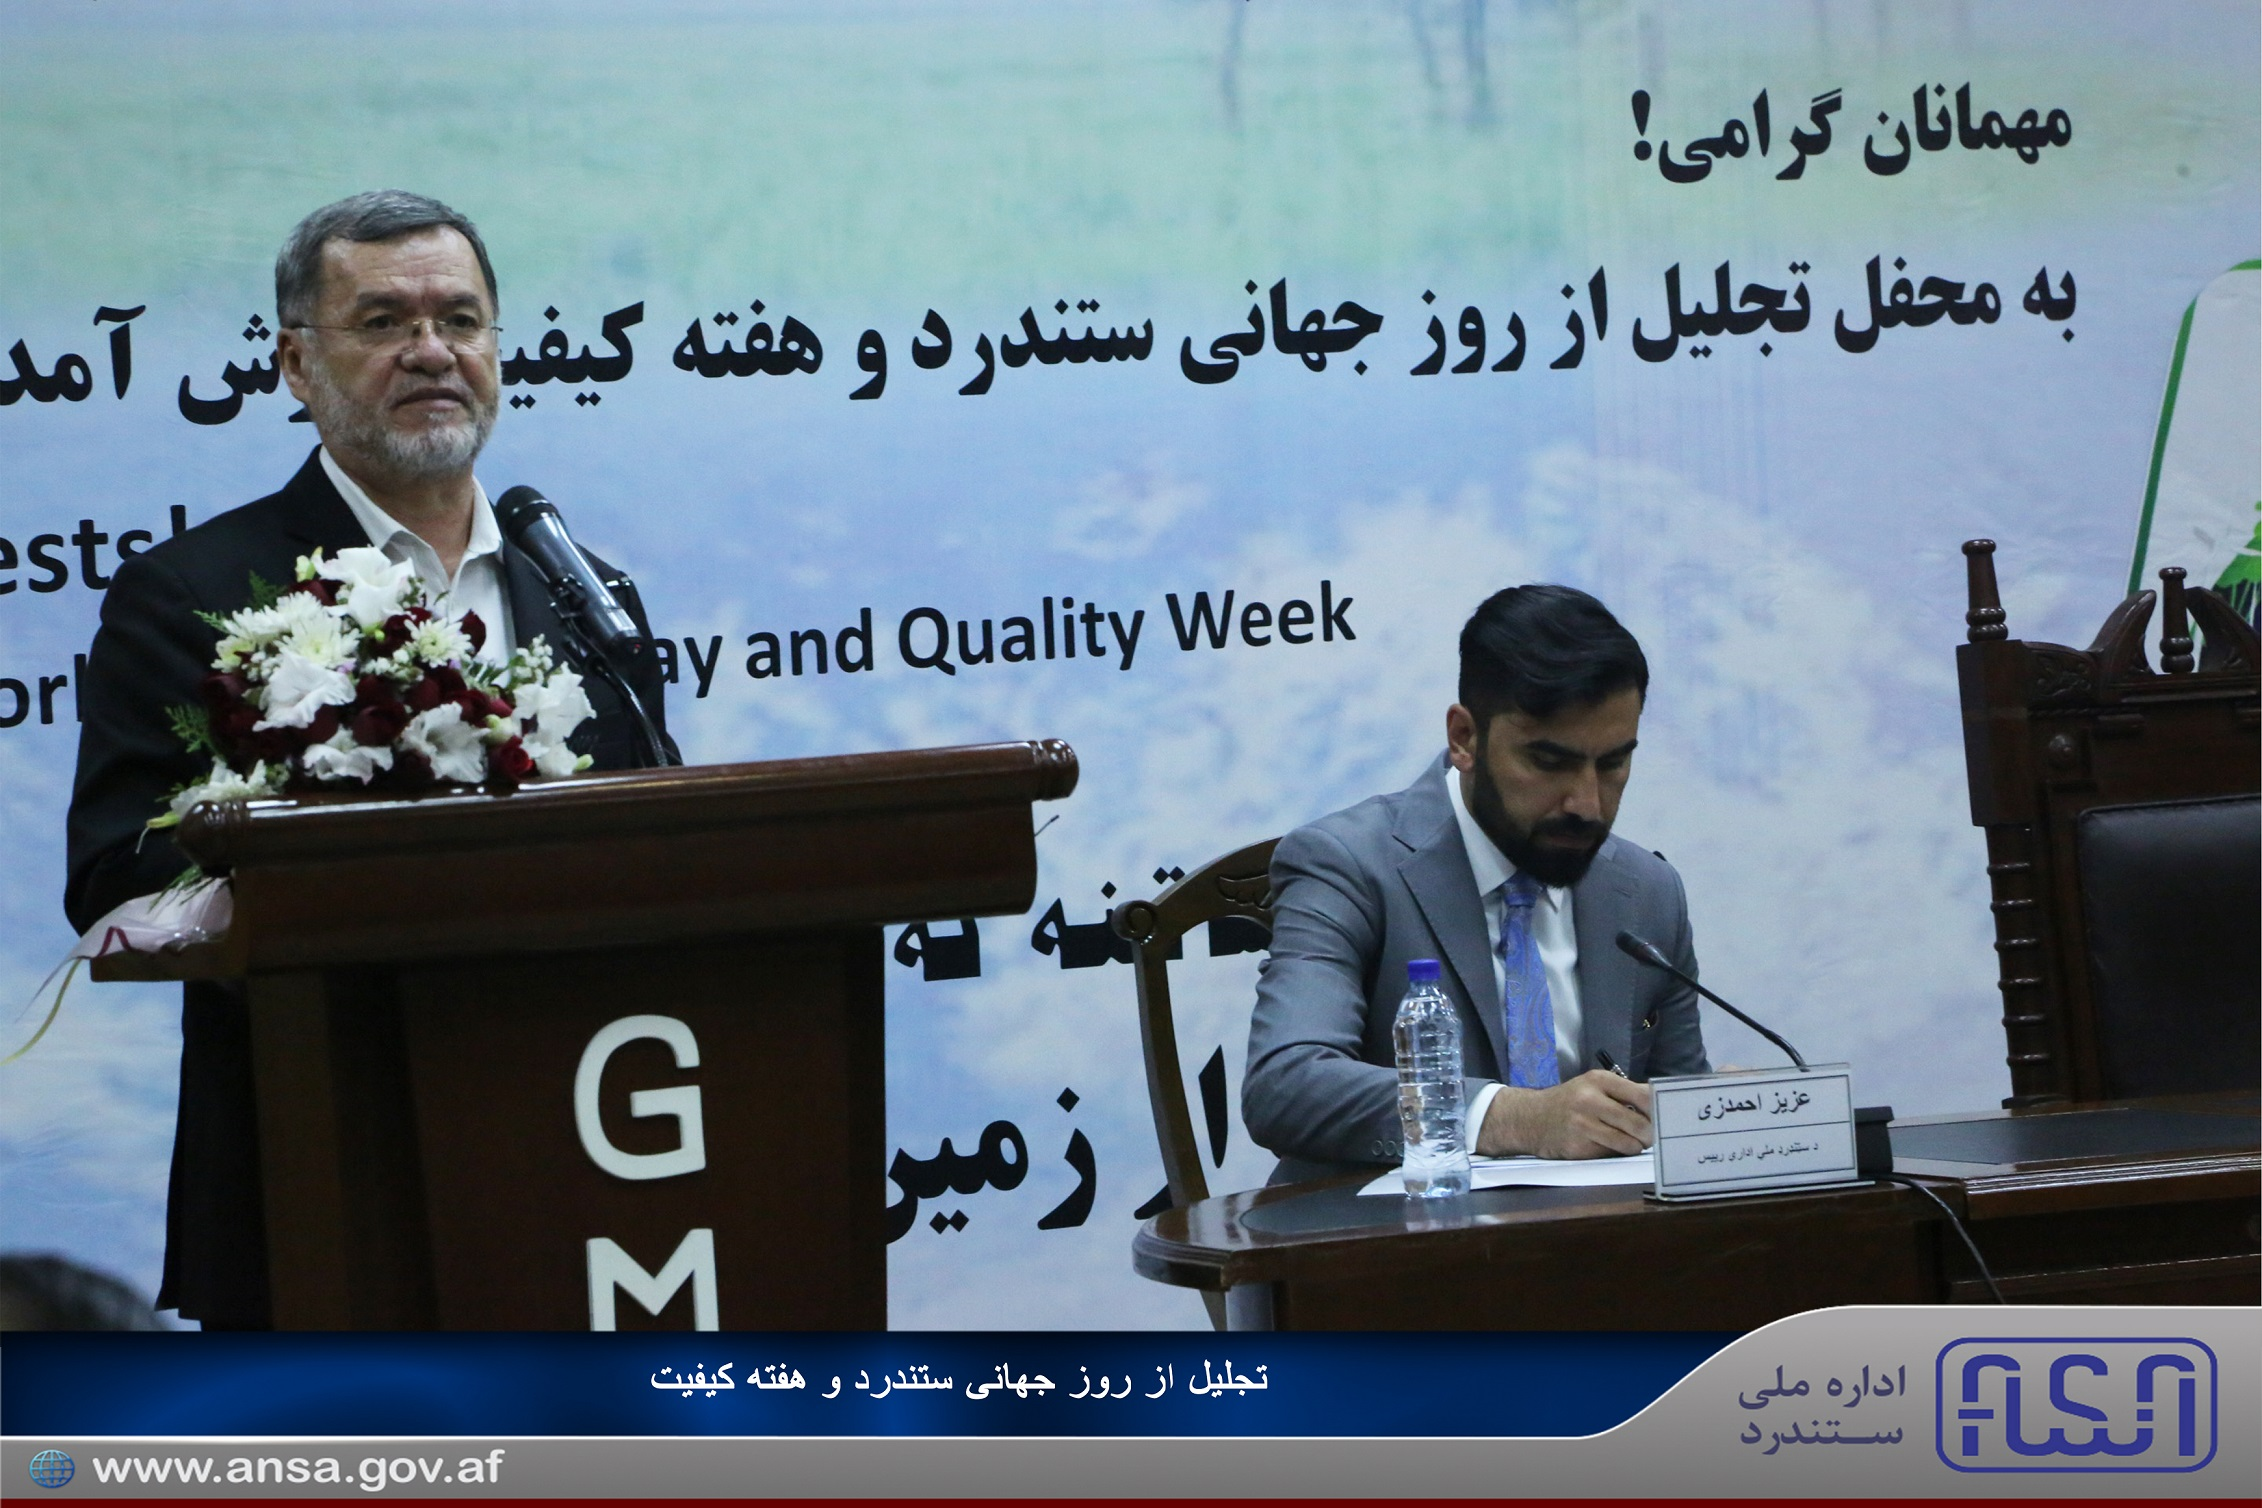 World Standard Day and Quality Week were celebrated.